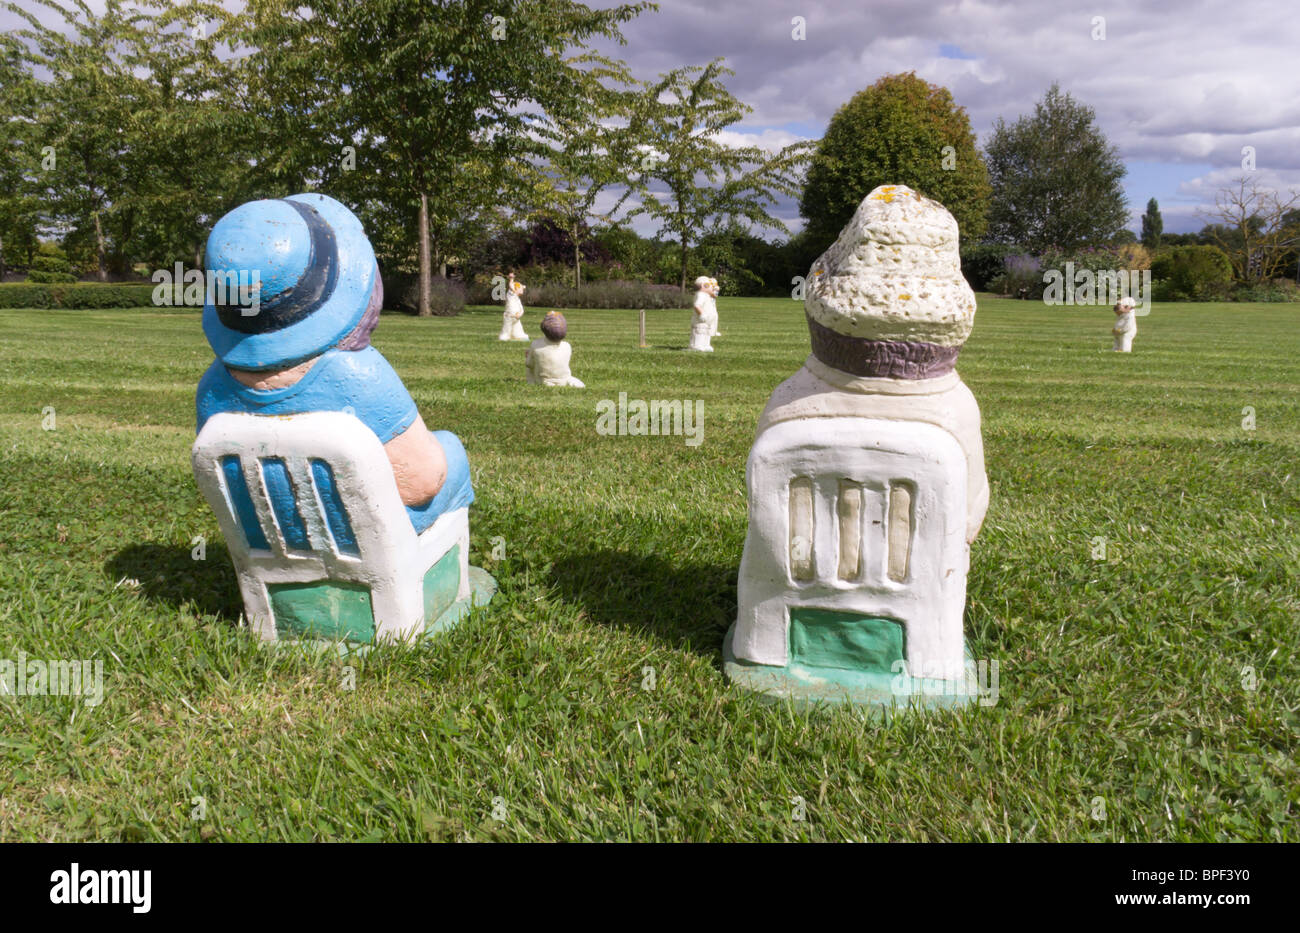 Garden Ornaments Miniature Cricket Match With Garden Gnome Type